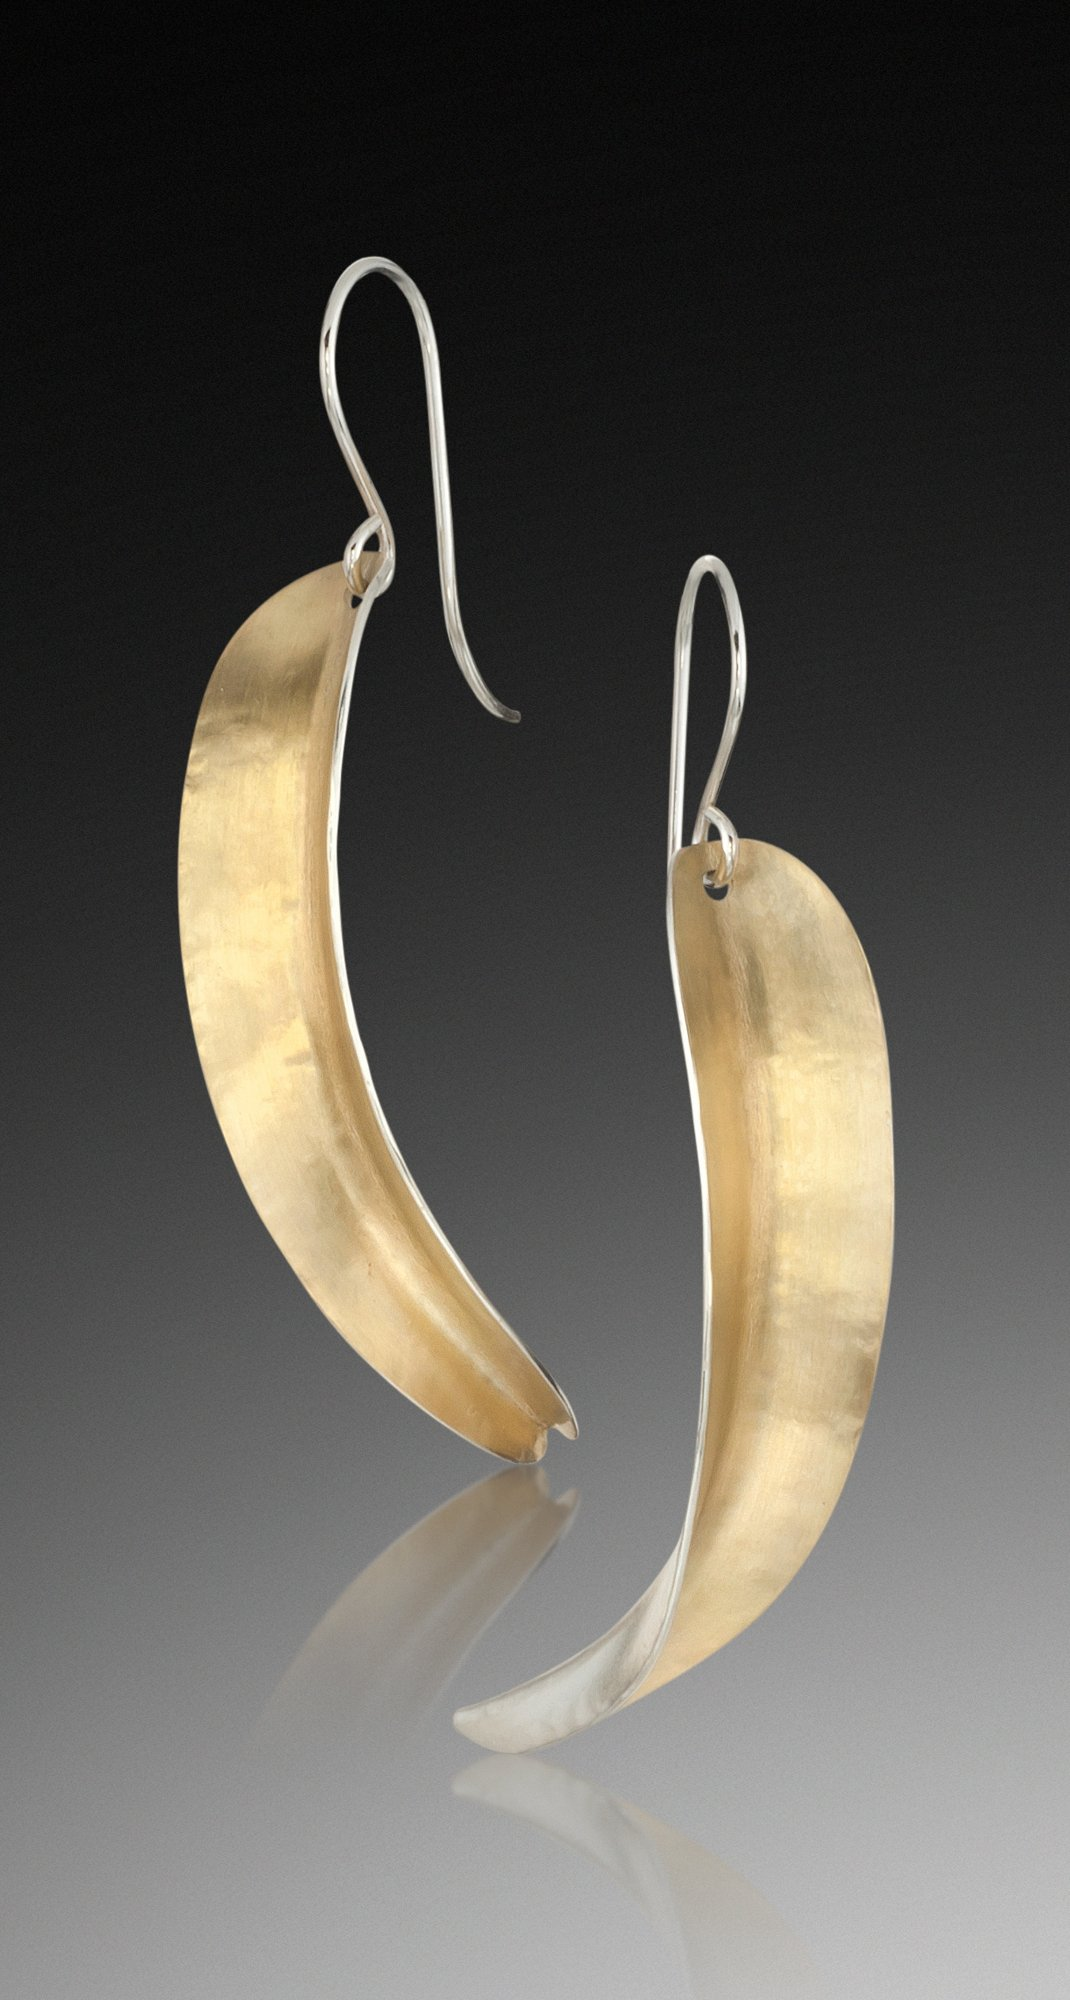 Willow Earrings in Bi-Metal